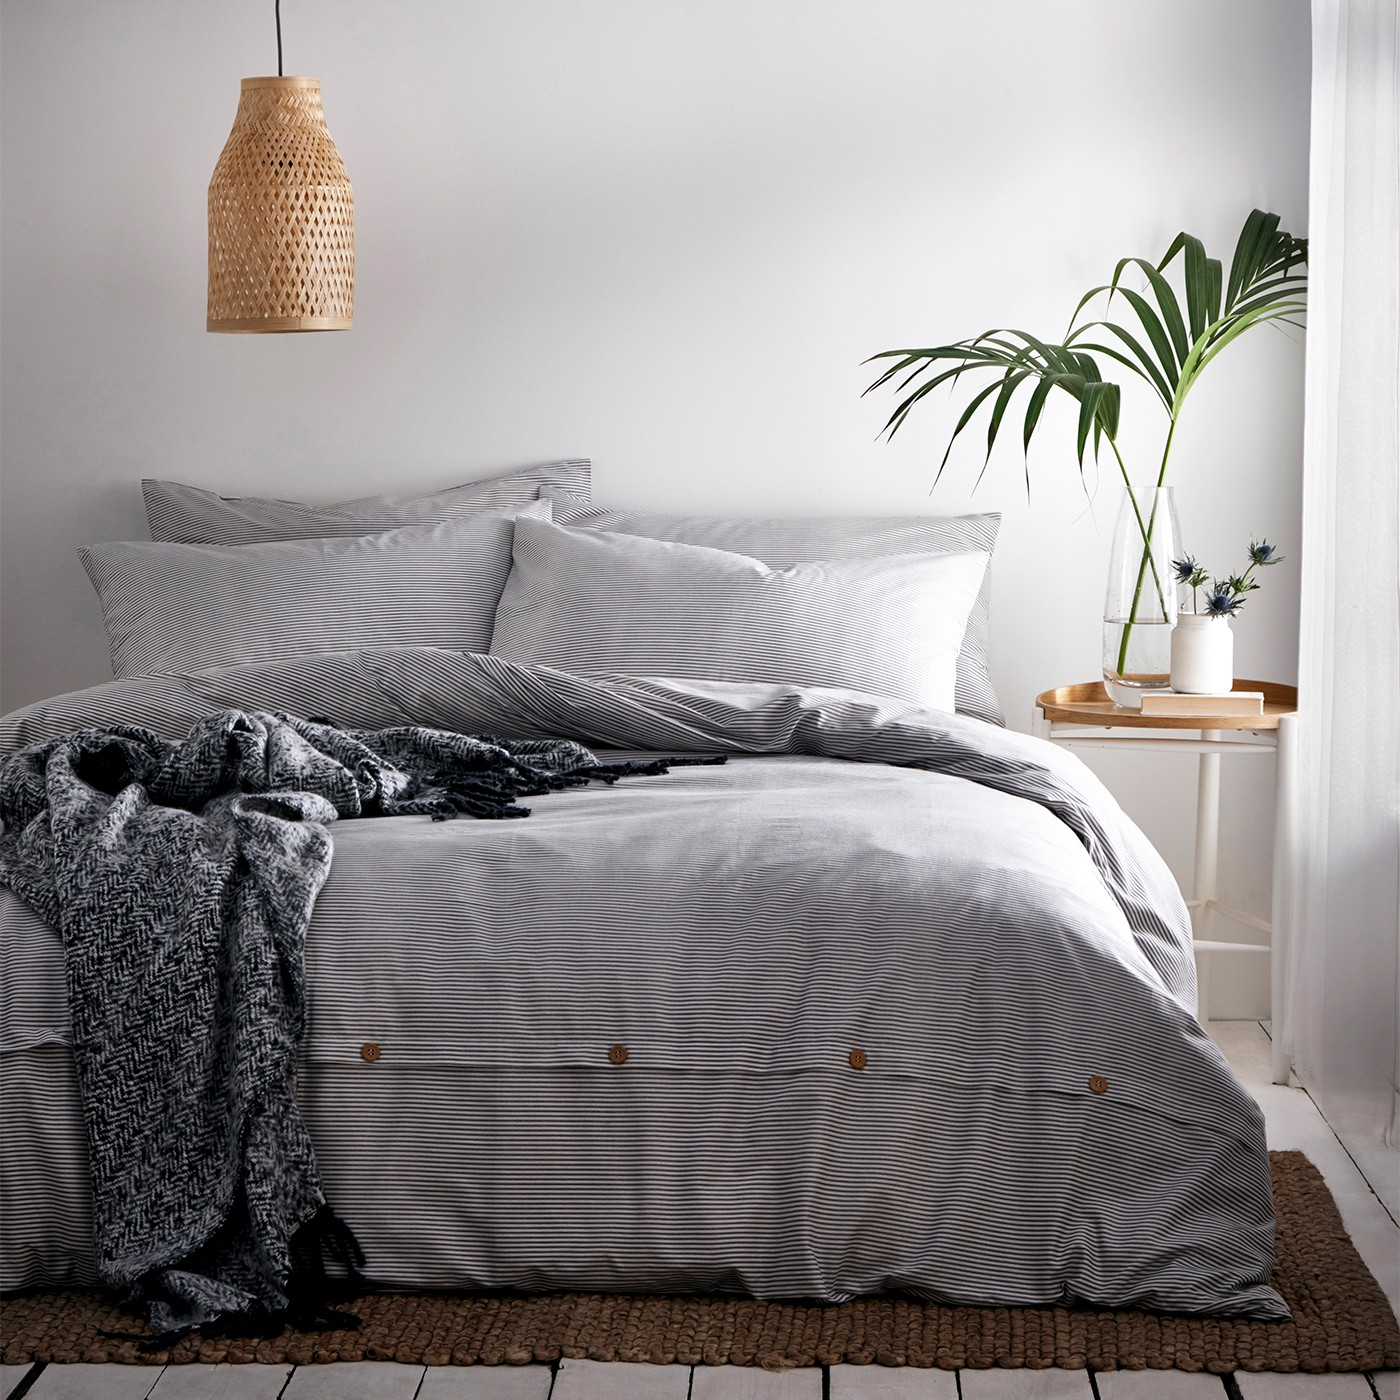 The Home Furnishings Company Cotton Holbury Grey Duvet Cover and Matching Pillow Cases